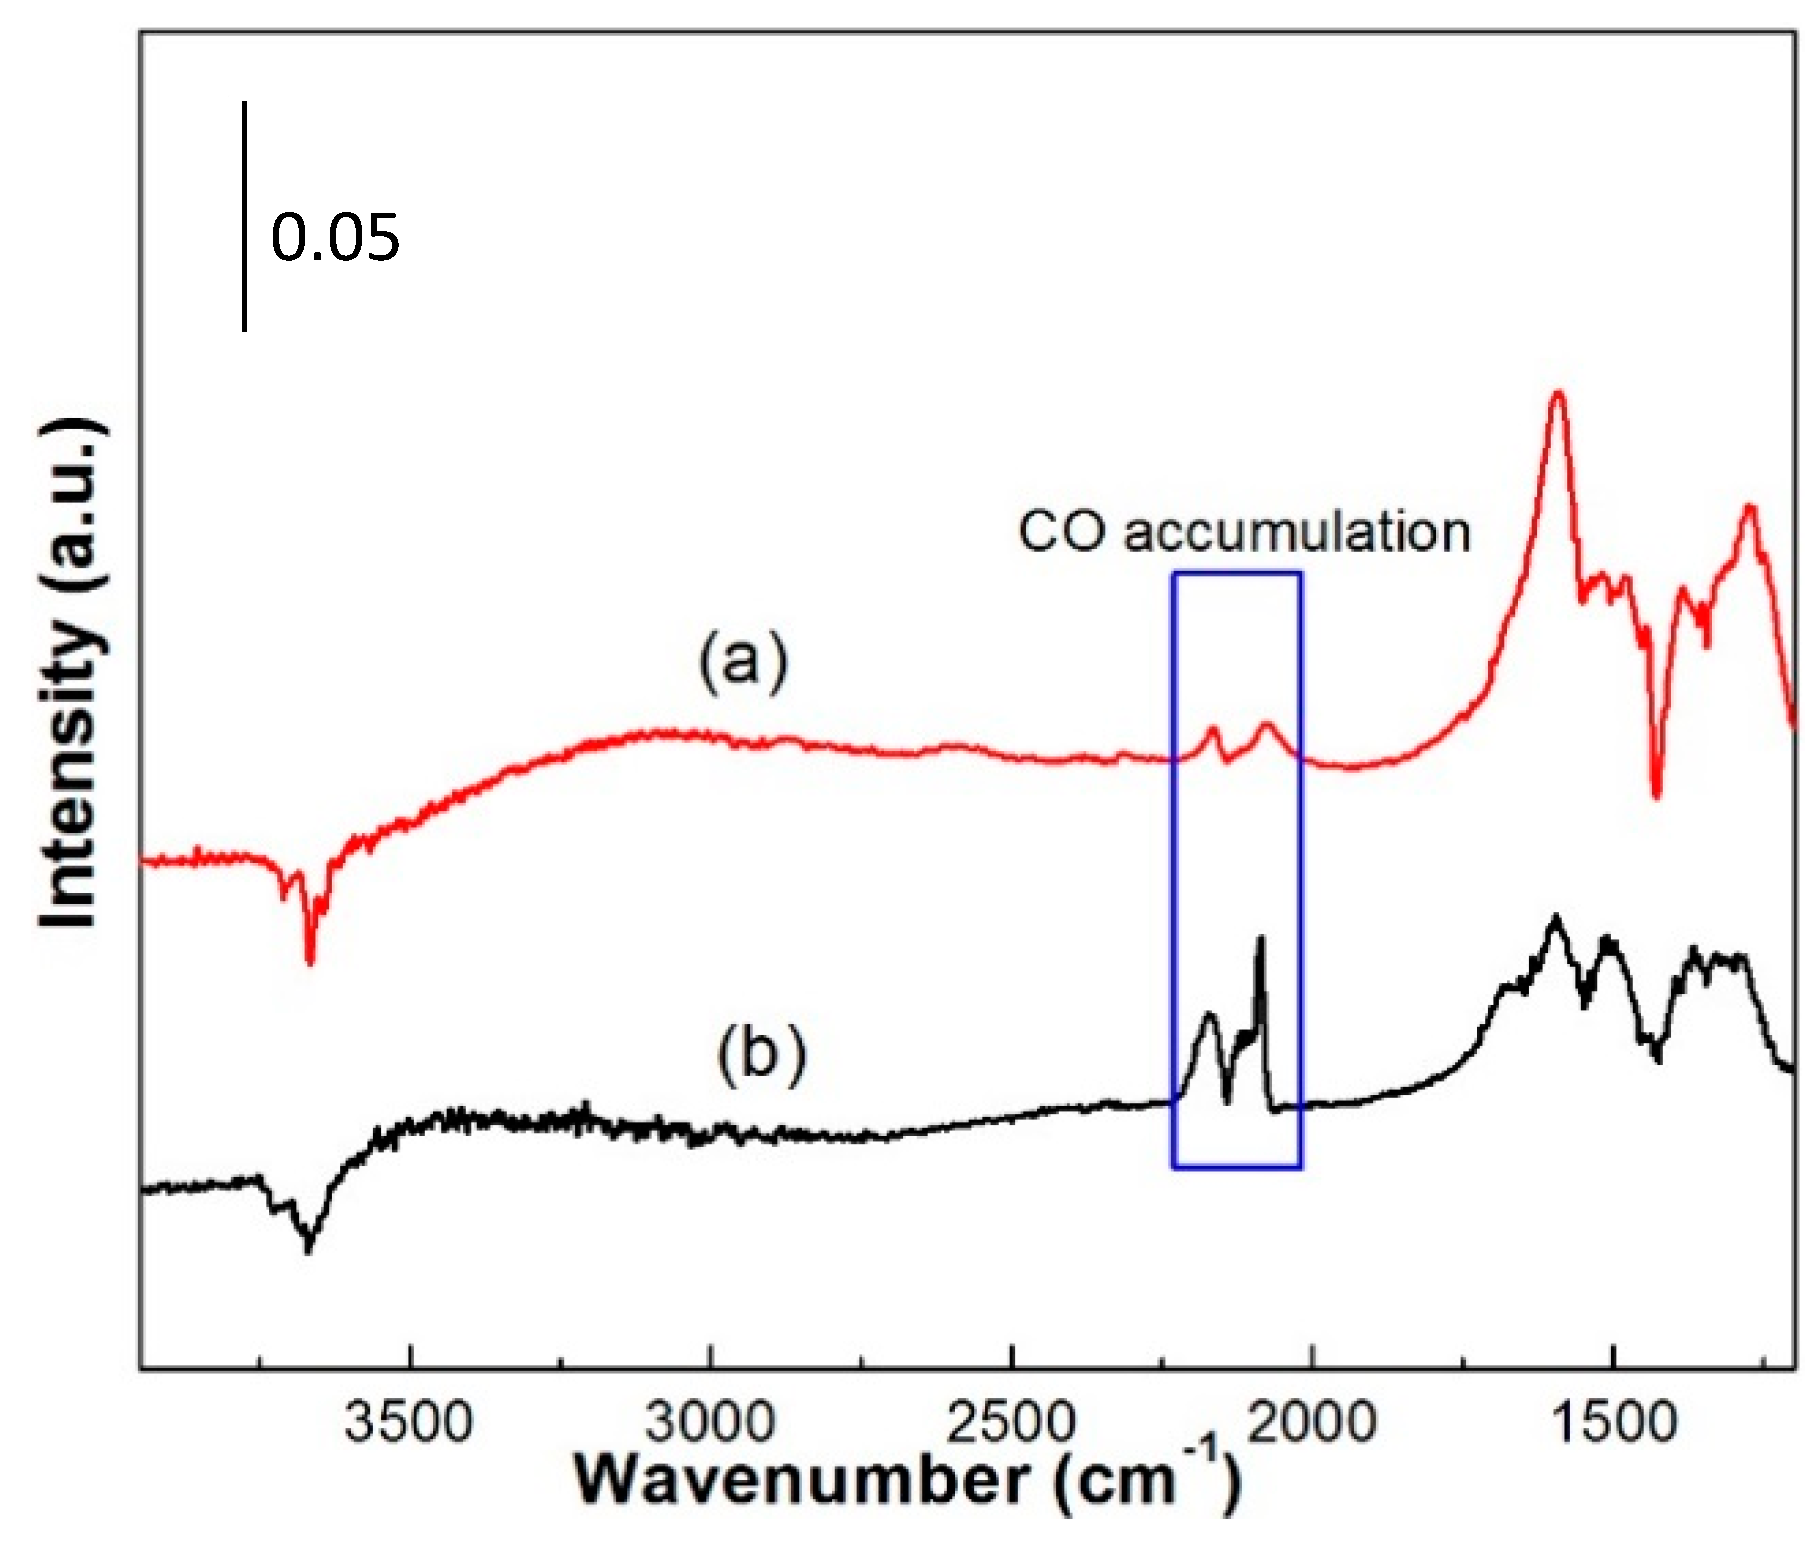 State Of Carbon Monoxide At Room Temperature